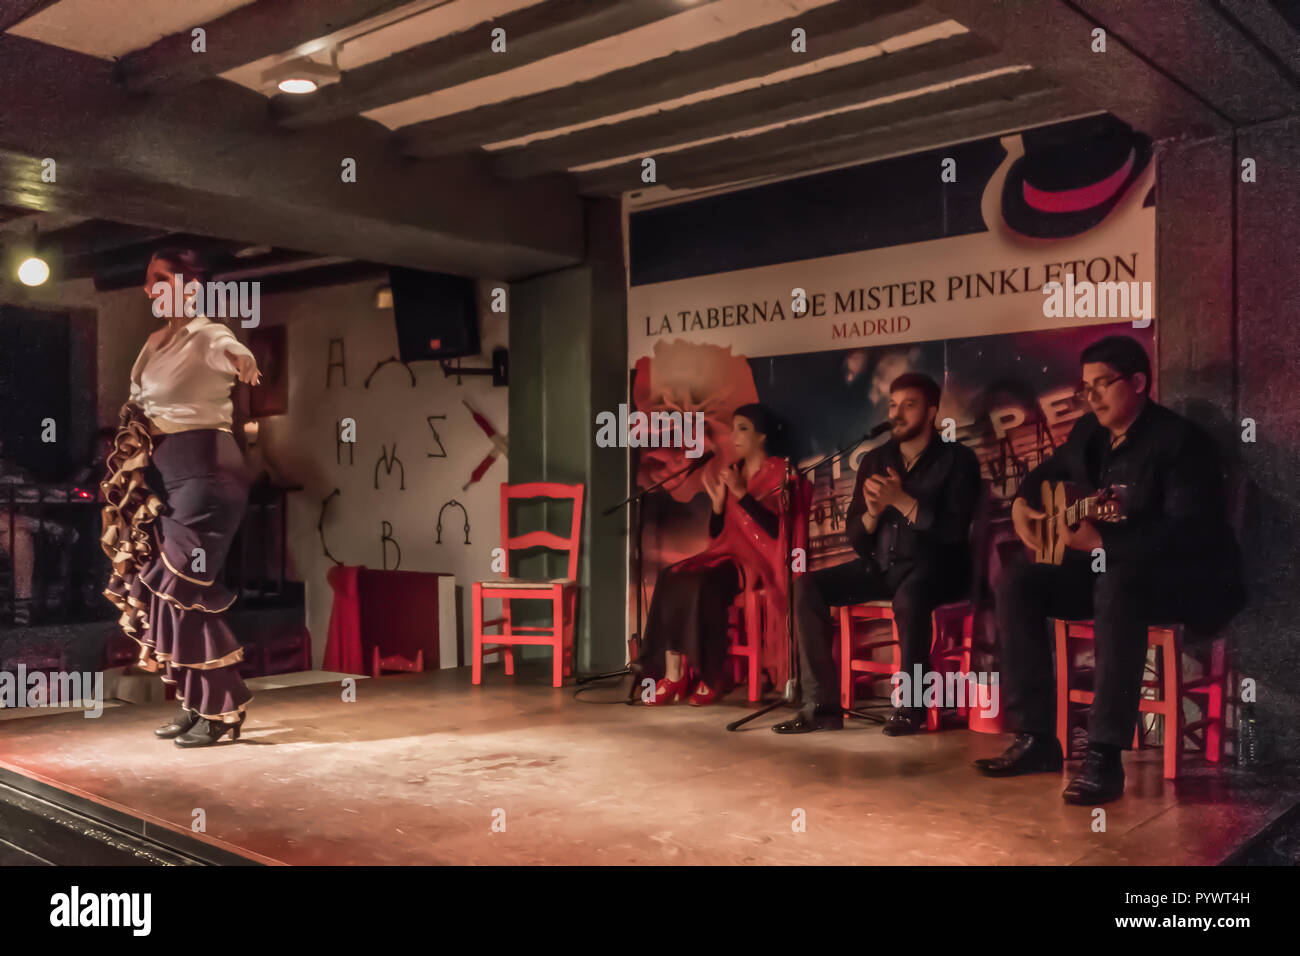 Madrid, Spain - flamenco is probably the most famous traditional music in Spain. Here in particular, a flamenco gig in Old Town Madrid - Stock Image